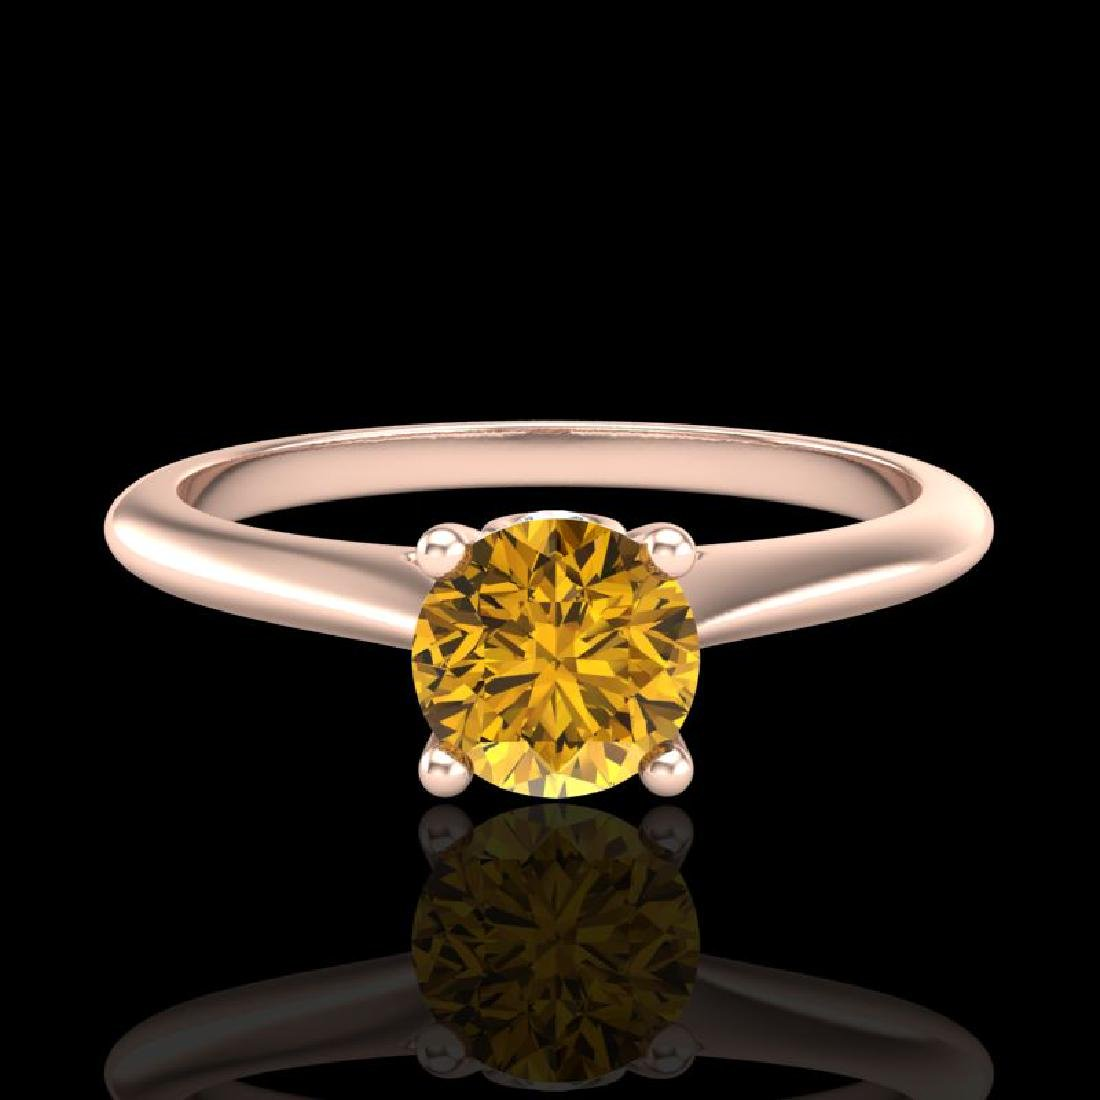 0.56 CTW Intense Fancy Yellow Diamond Engagement Art - 2